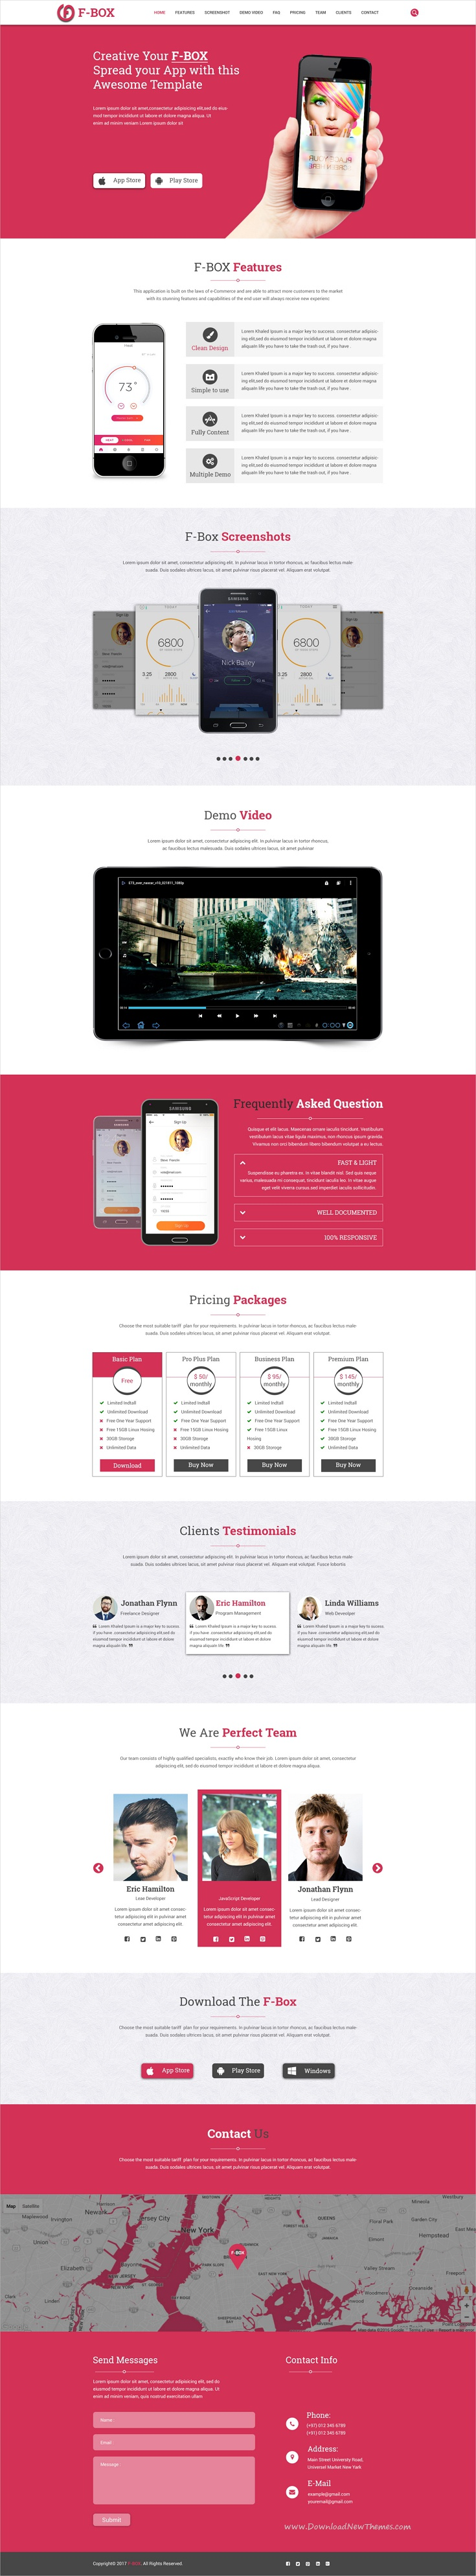 f box landing page mobile app psd template psd templates mobile